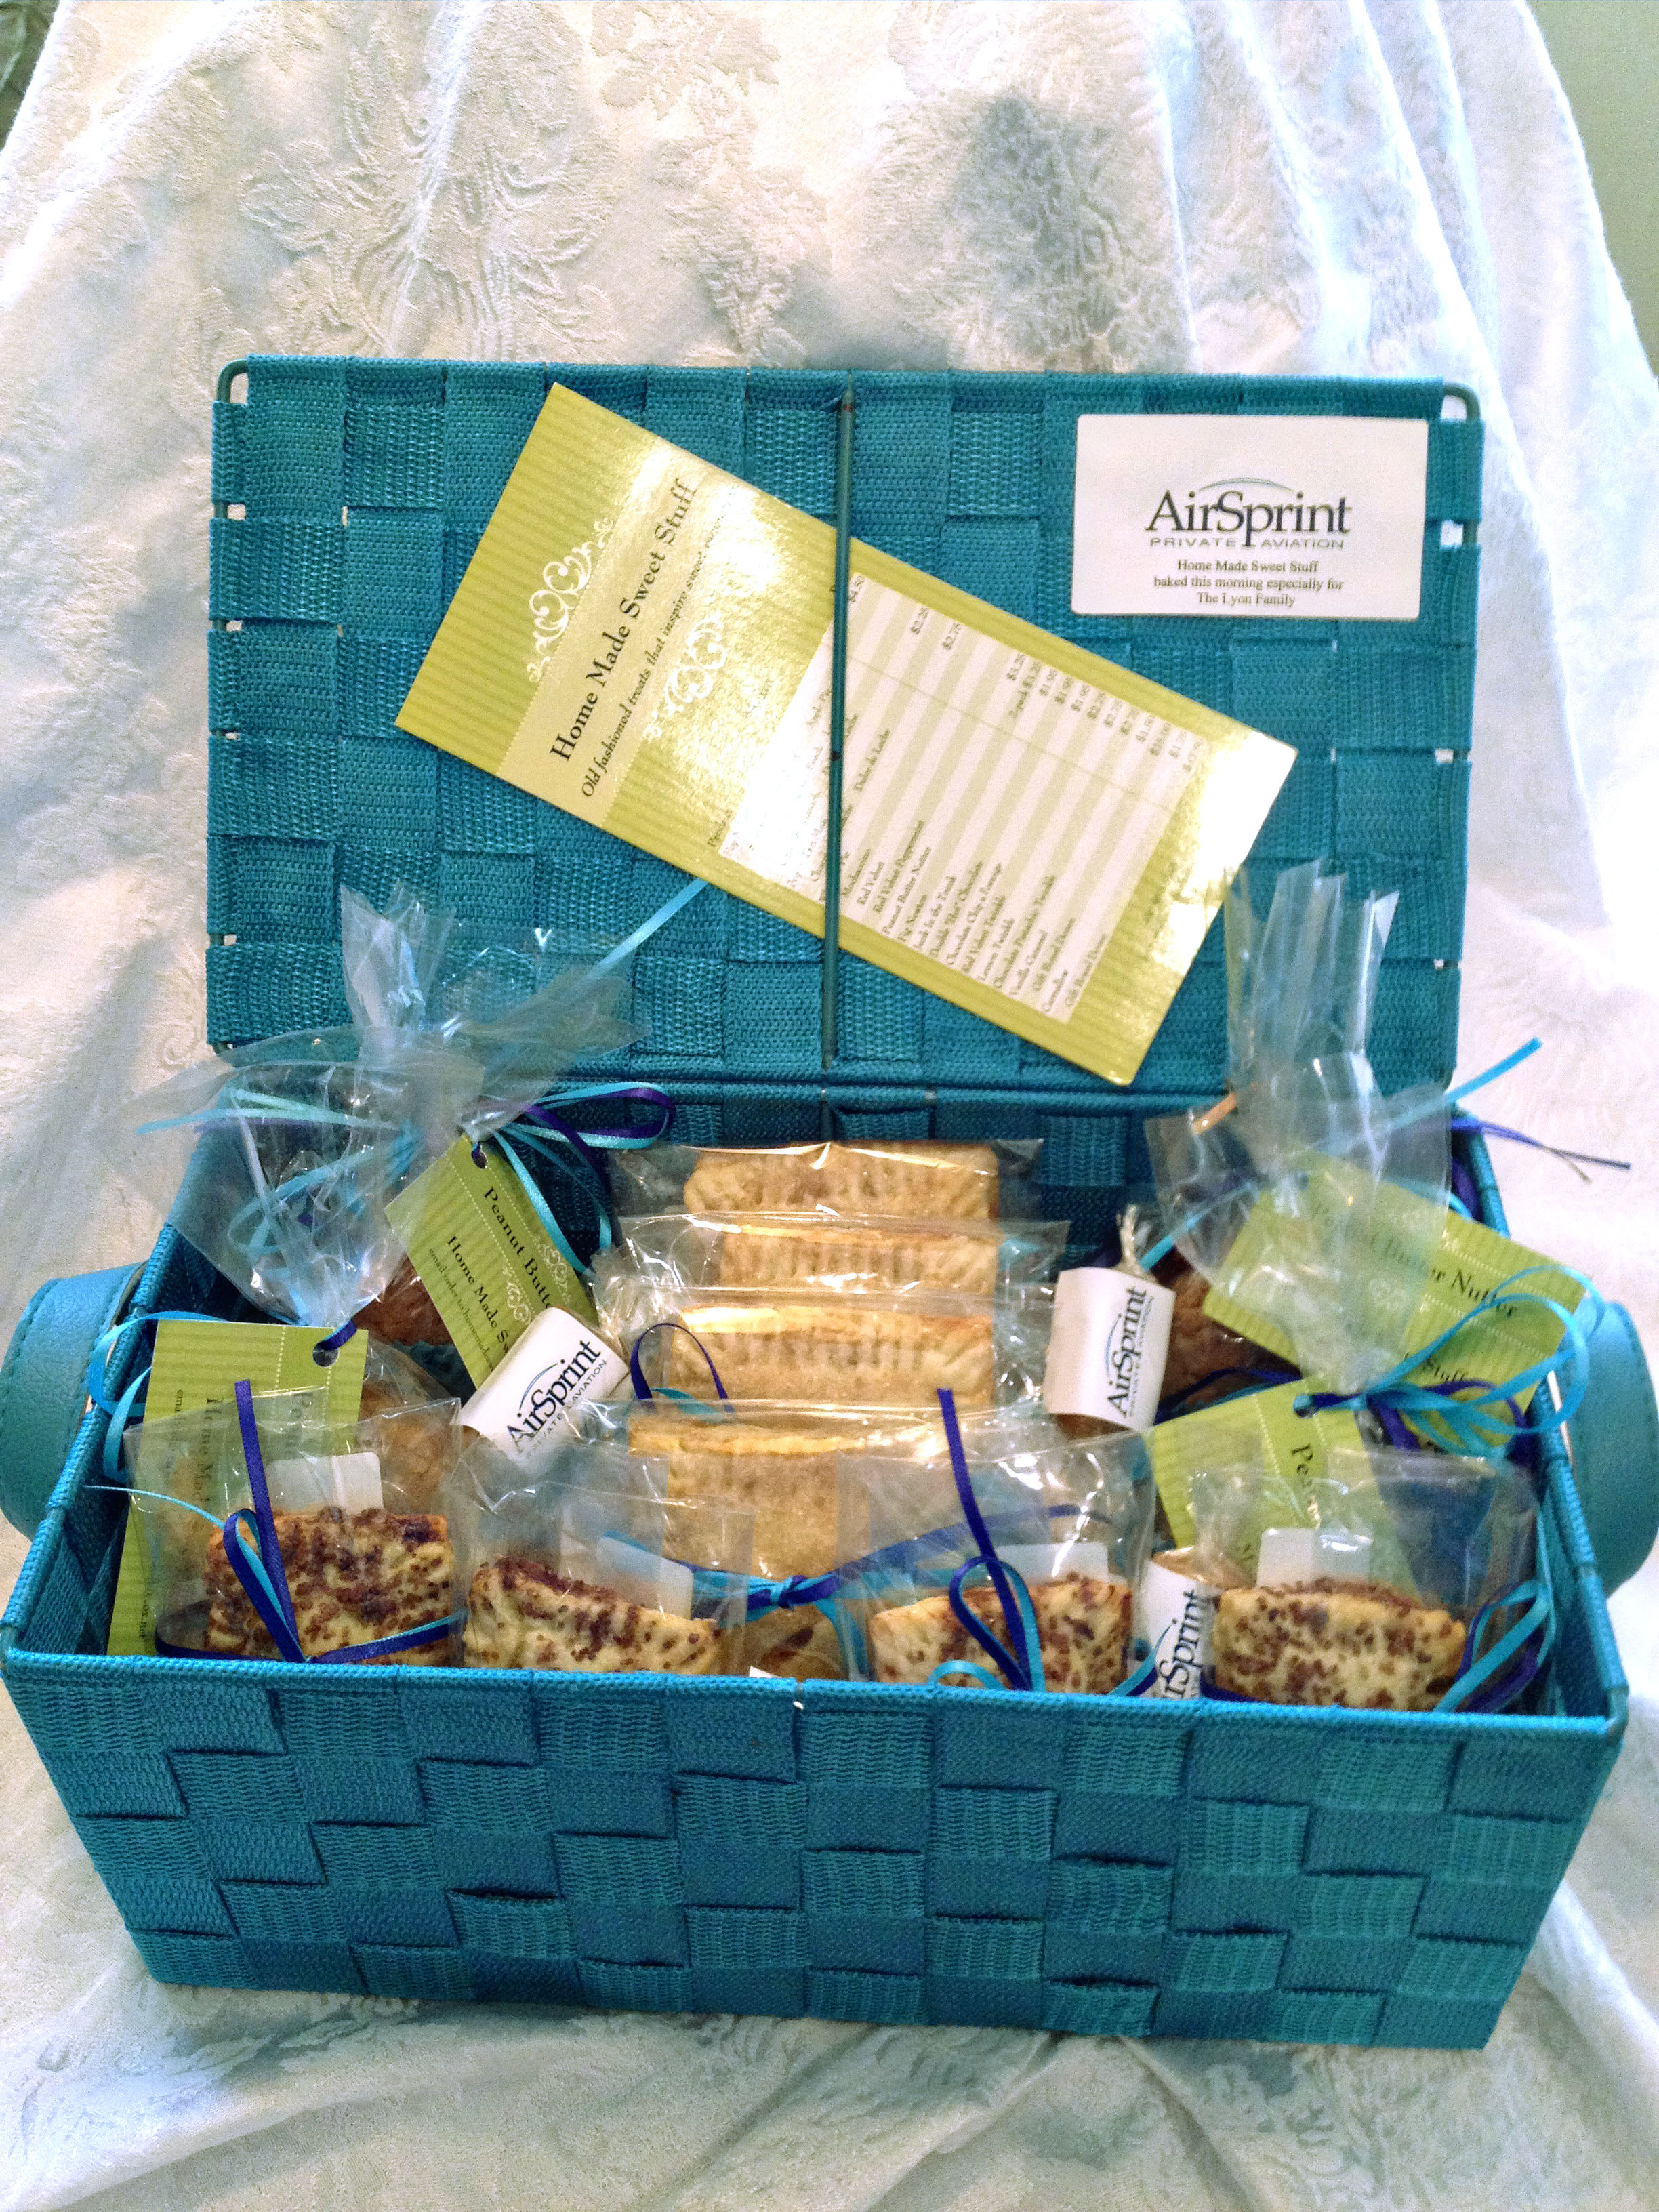 Assorted baked goods and candies made to order home for Homemade baked goods gift basket ideas